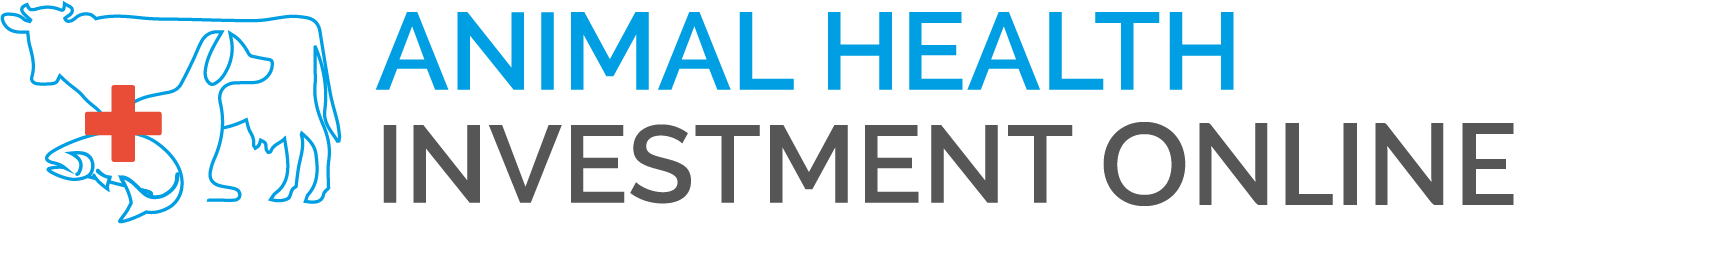 2020 Animal Health Investment One